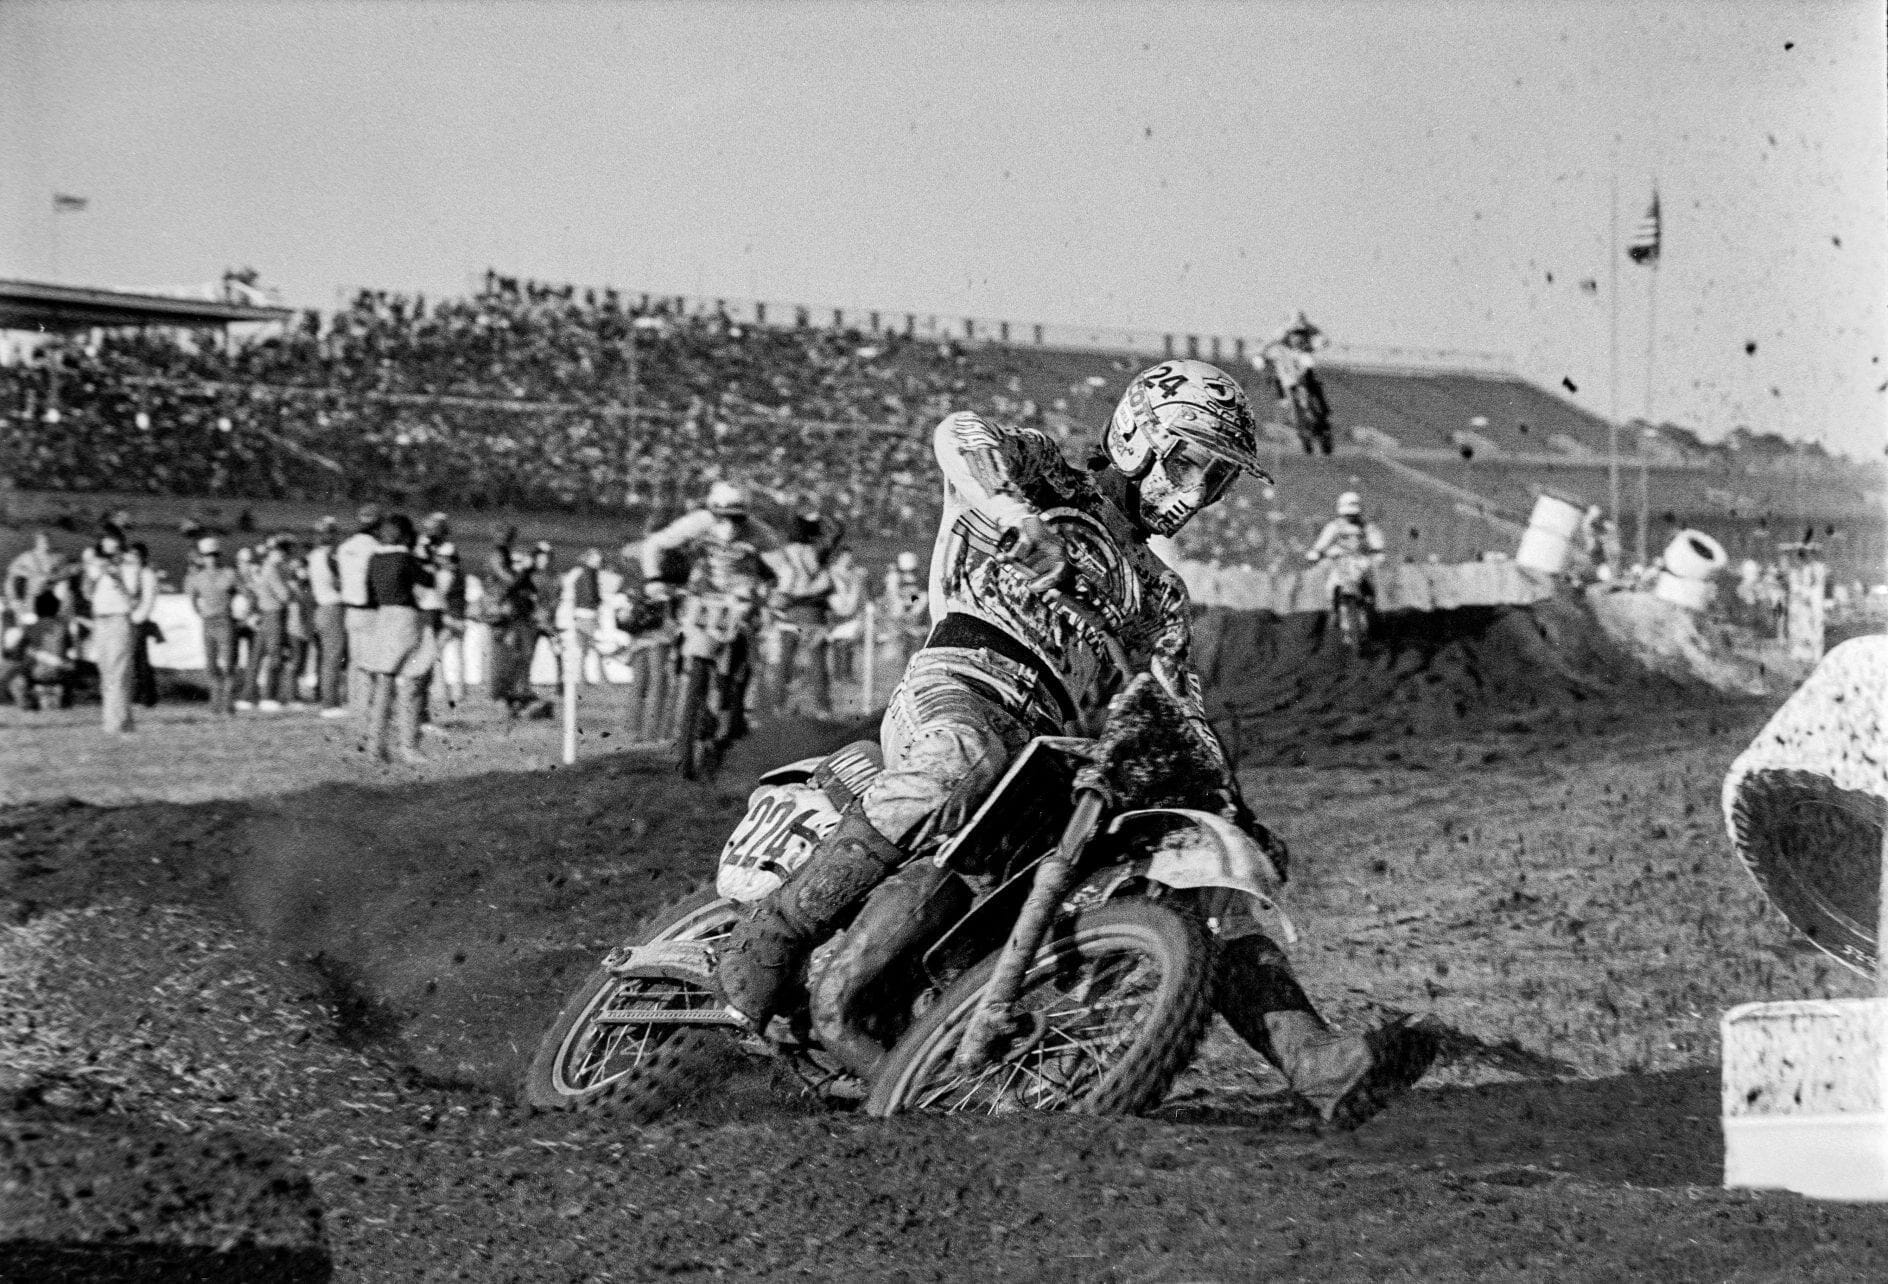 Daytona Supercross 1983 – Dave Dewhurst Photo